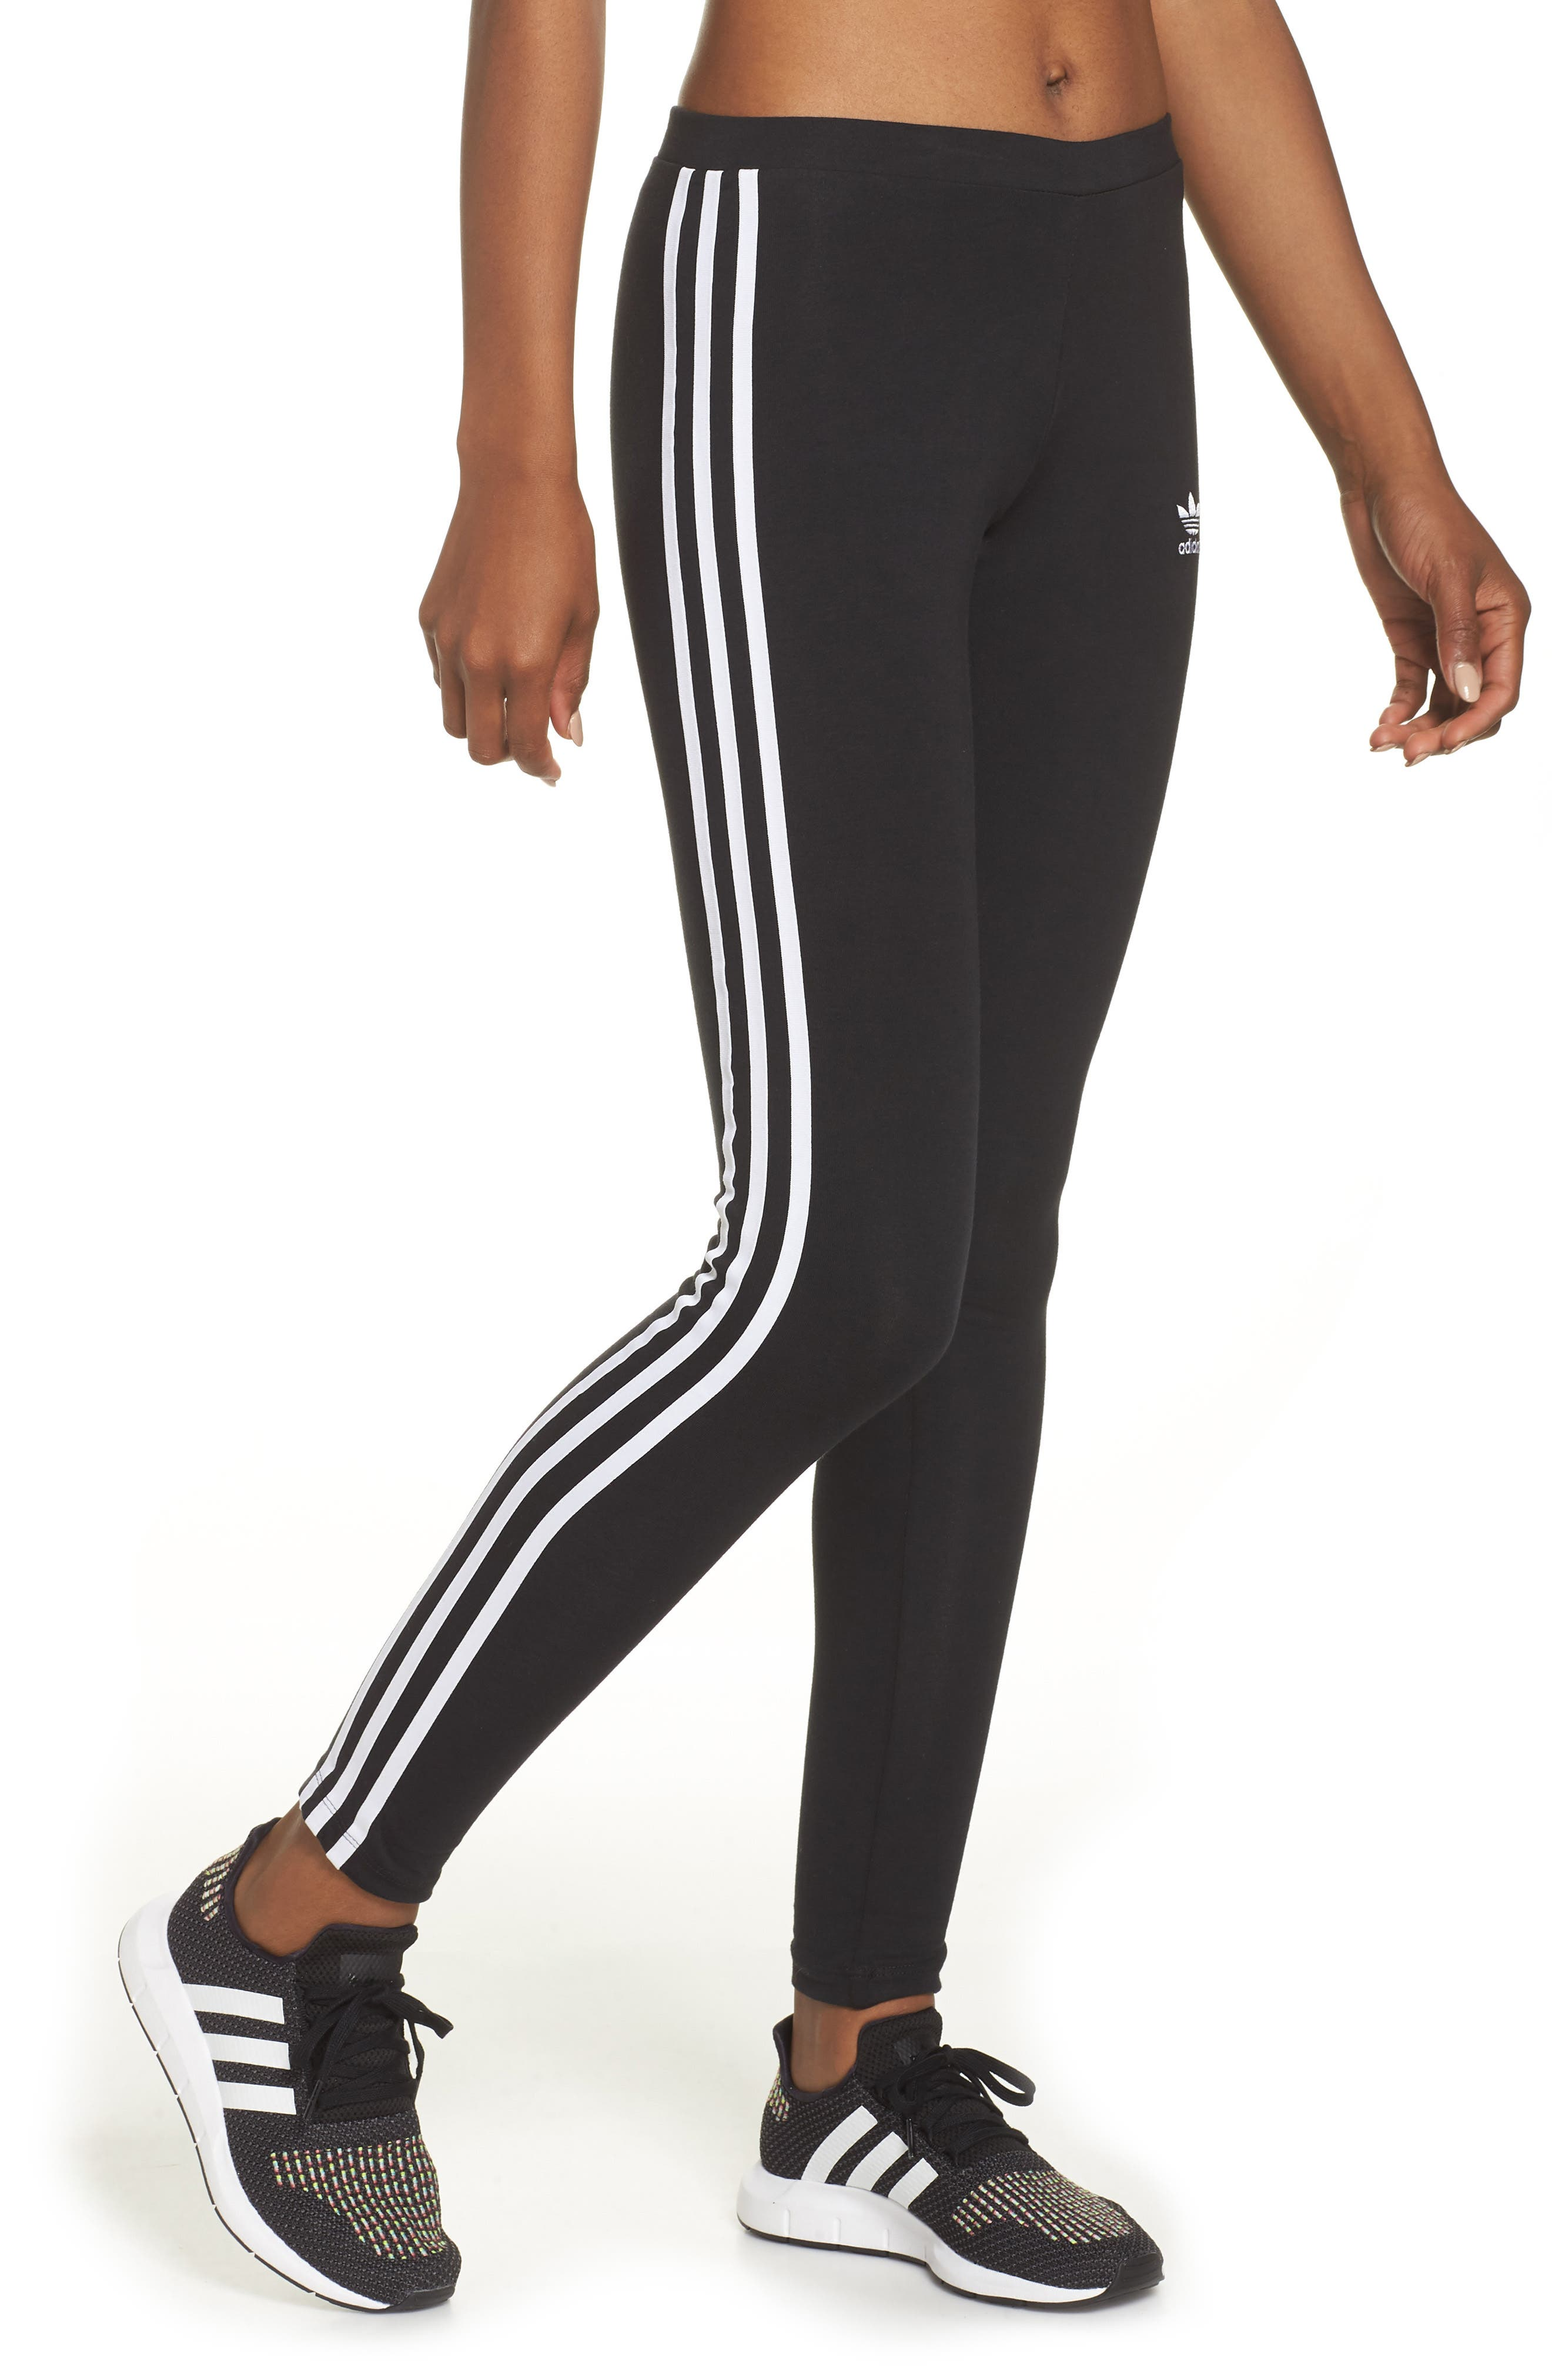 1dd661a8aa6 Leggings adidas for Women  Clothing